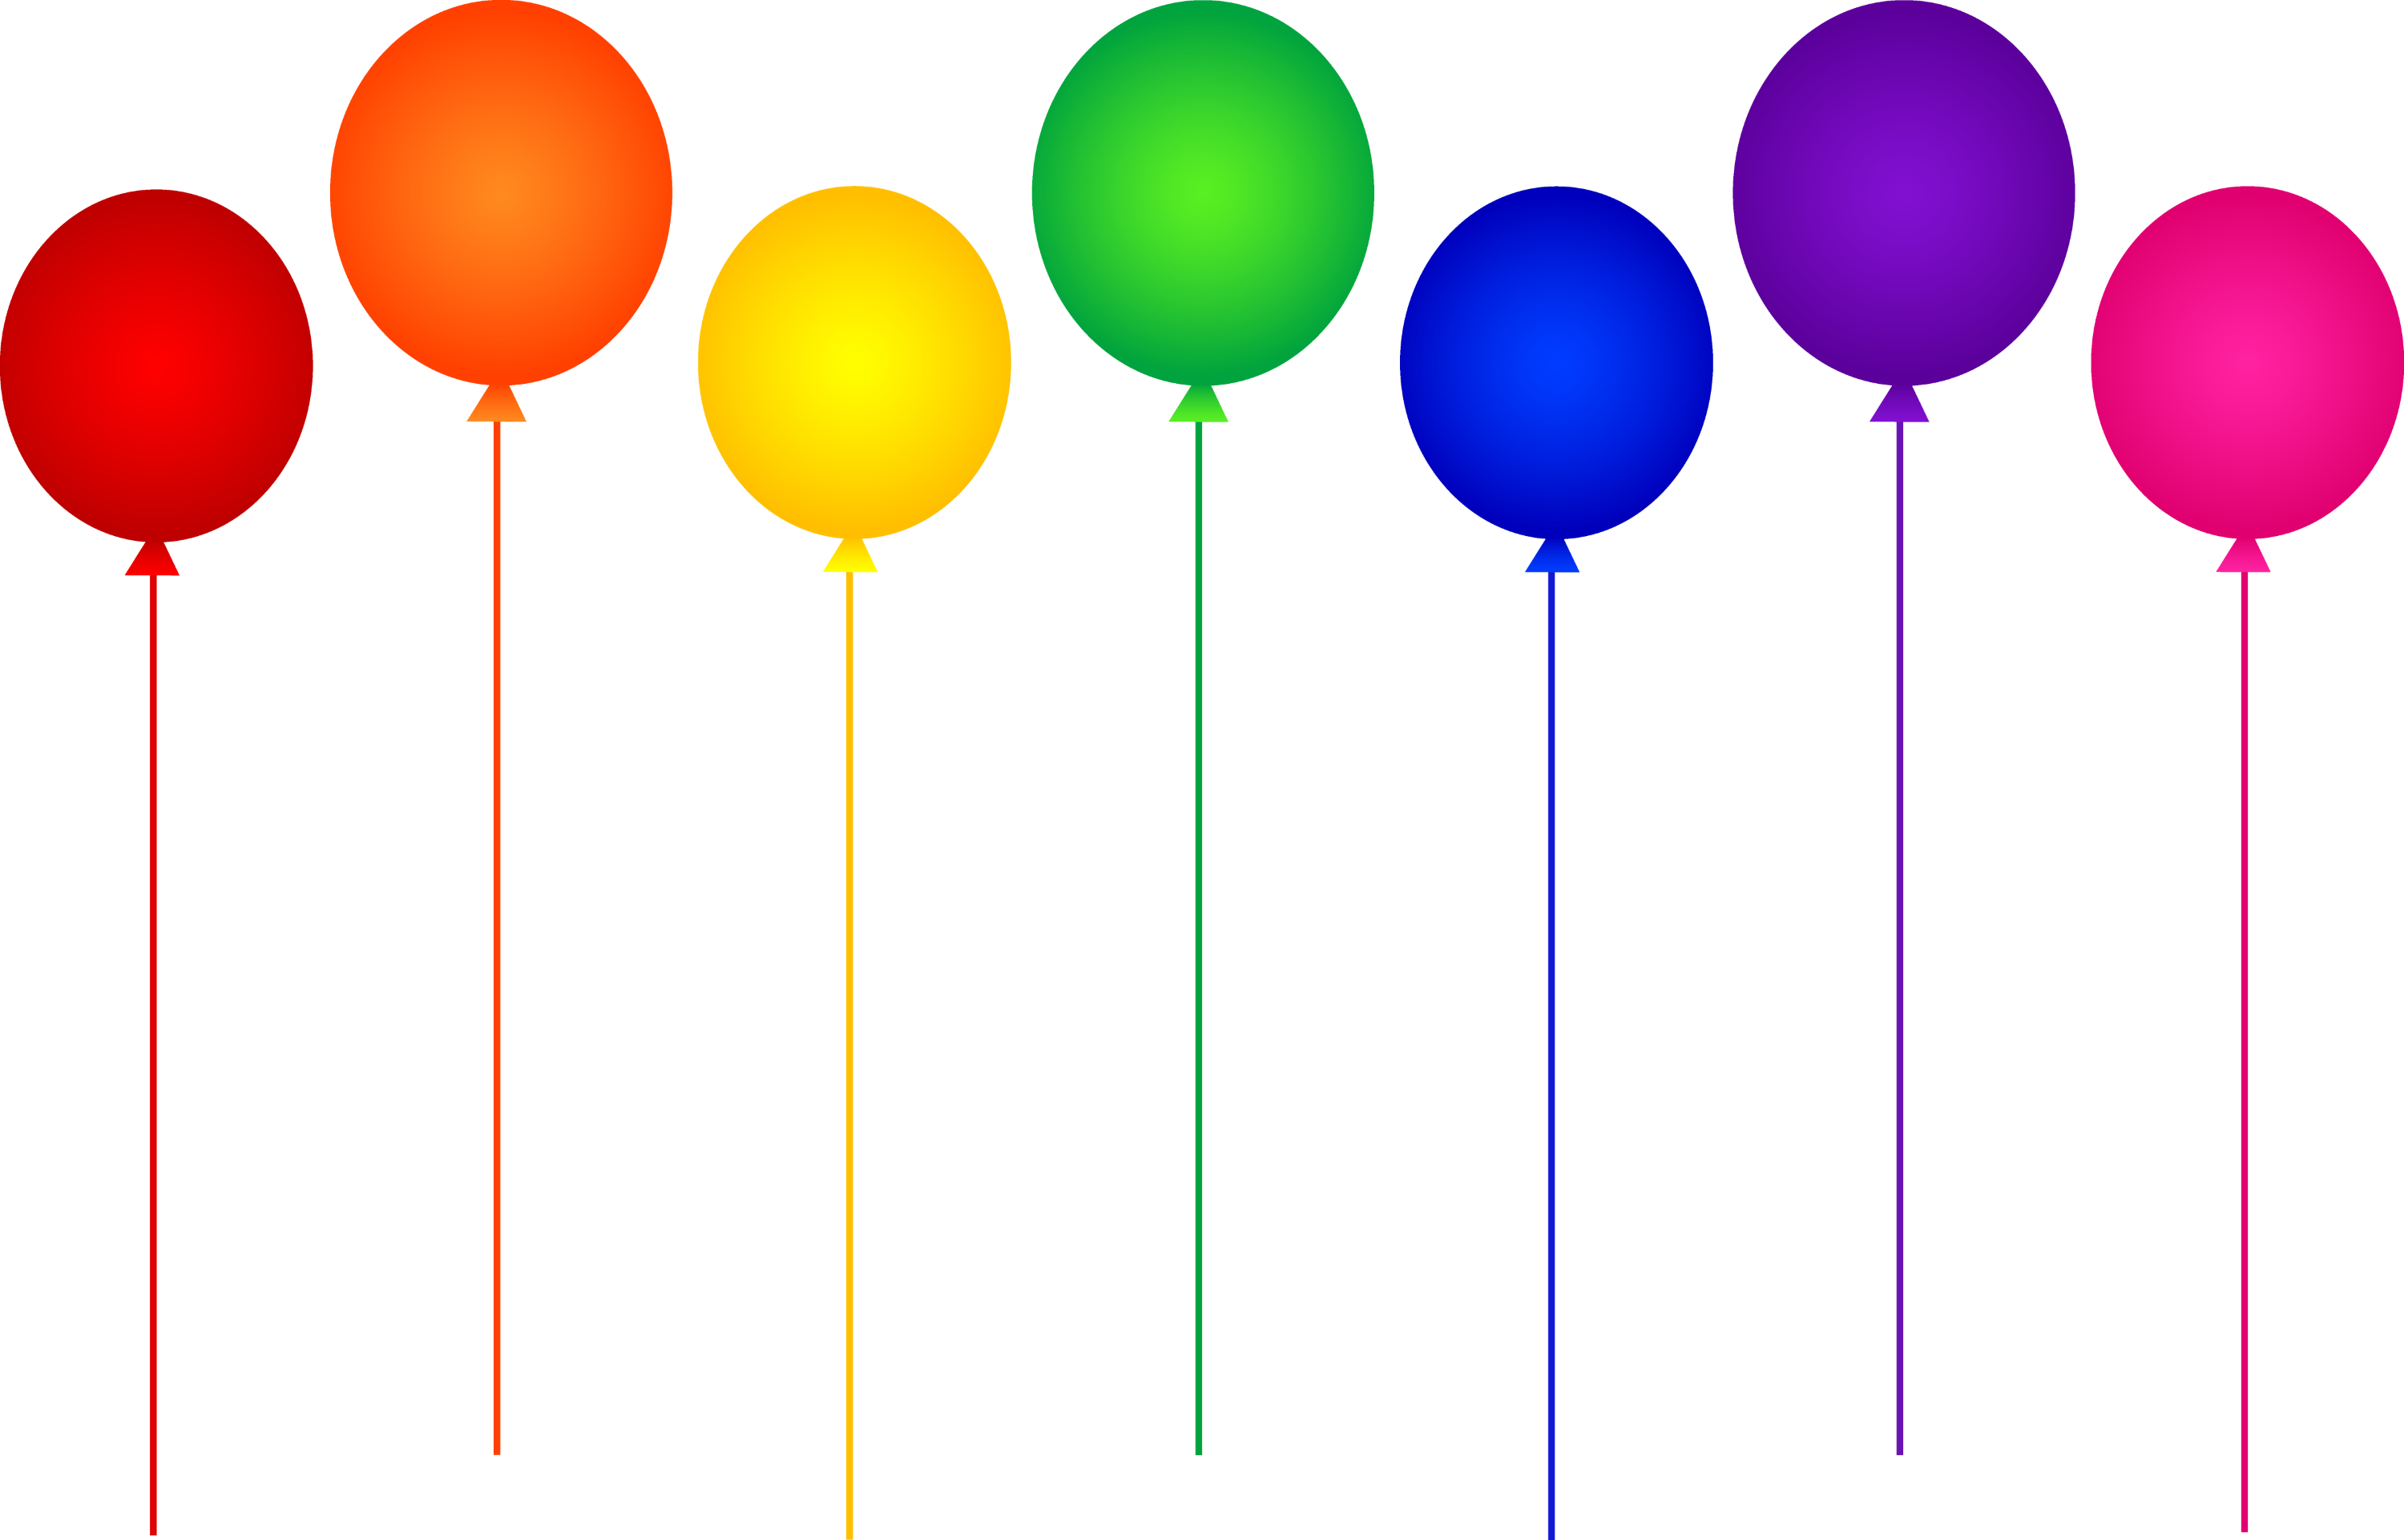 Balloons colorful. Seven rainbow birthday party